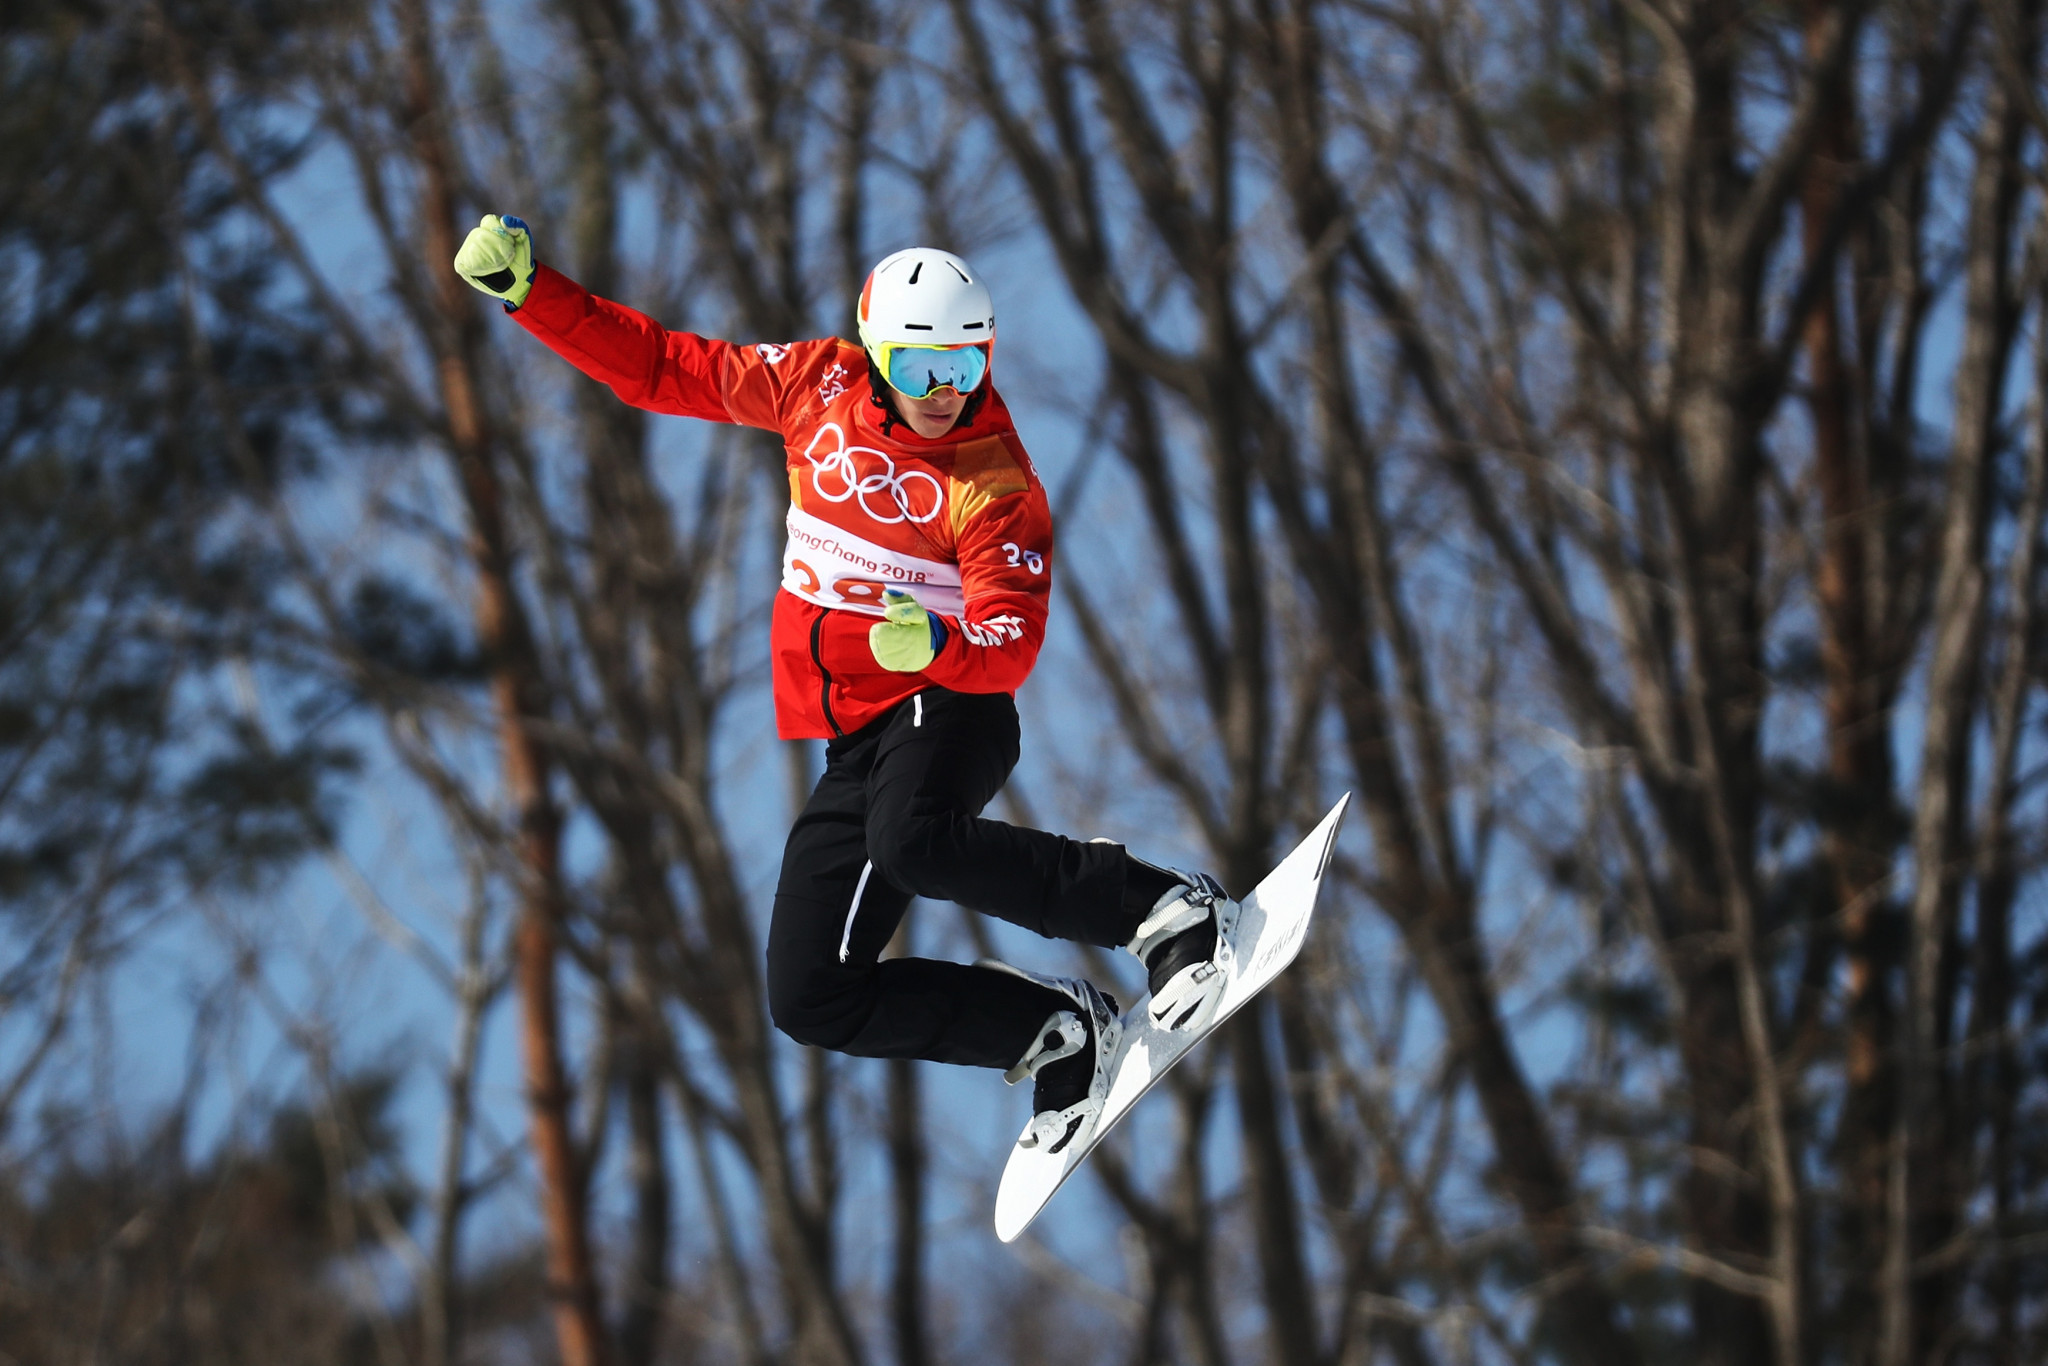 Canada's Éliot Grondin topped men's qualification at the first Snowboard Cross World Cup of the season ©Getty Images